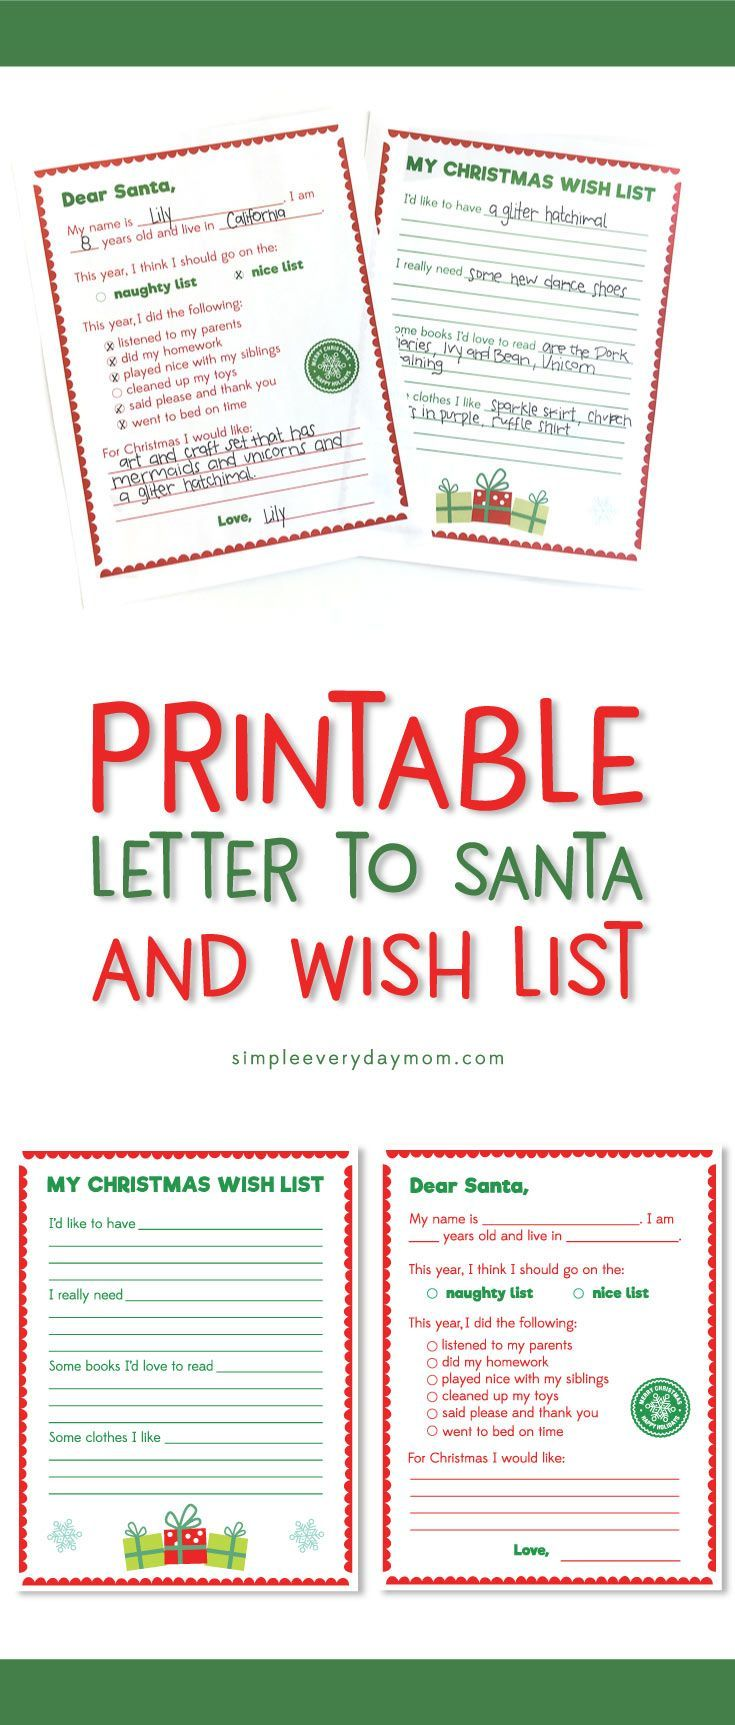 Printable Letter To Santa & Wish List | Have your kids write a letter to Santa with this easy to fill out printable. There's also a wish list they can fill out to give to family! #christmas